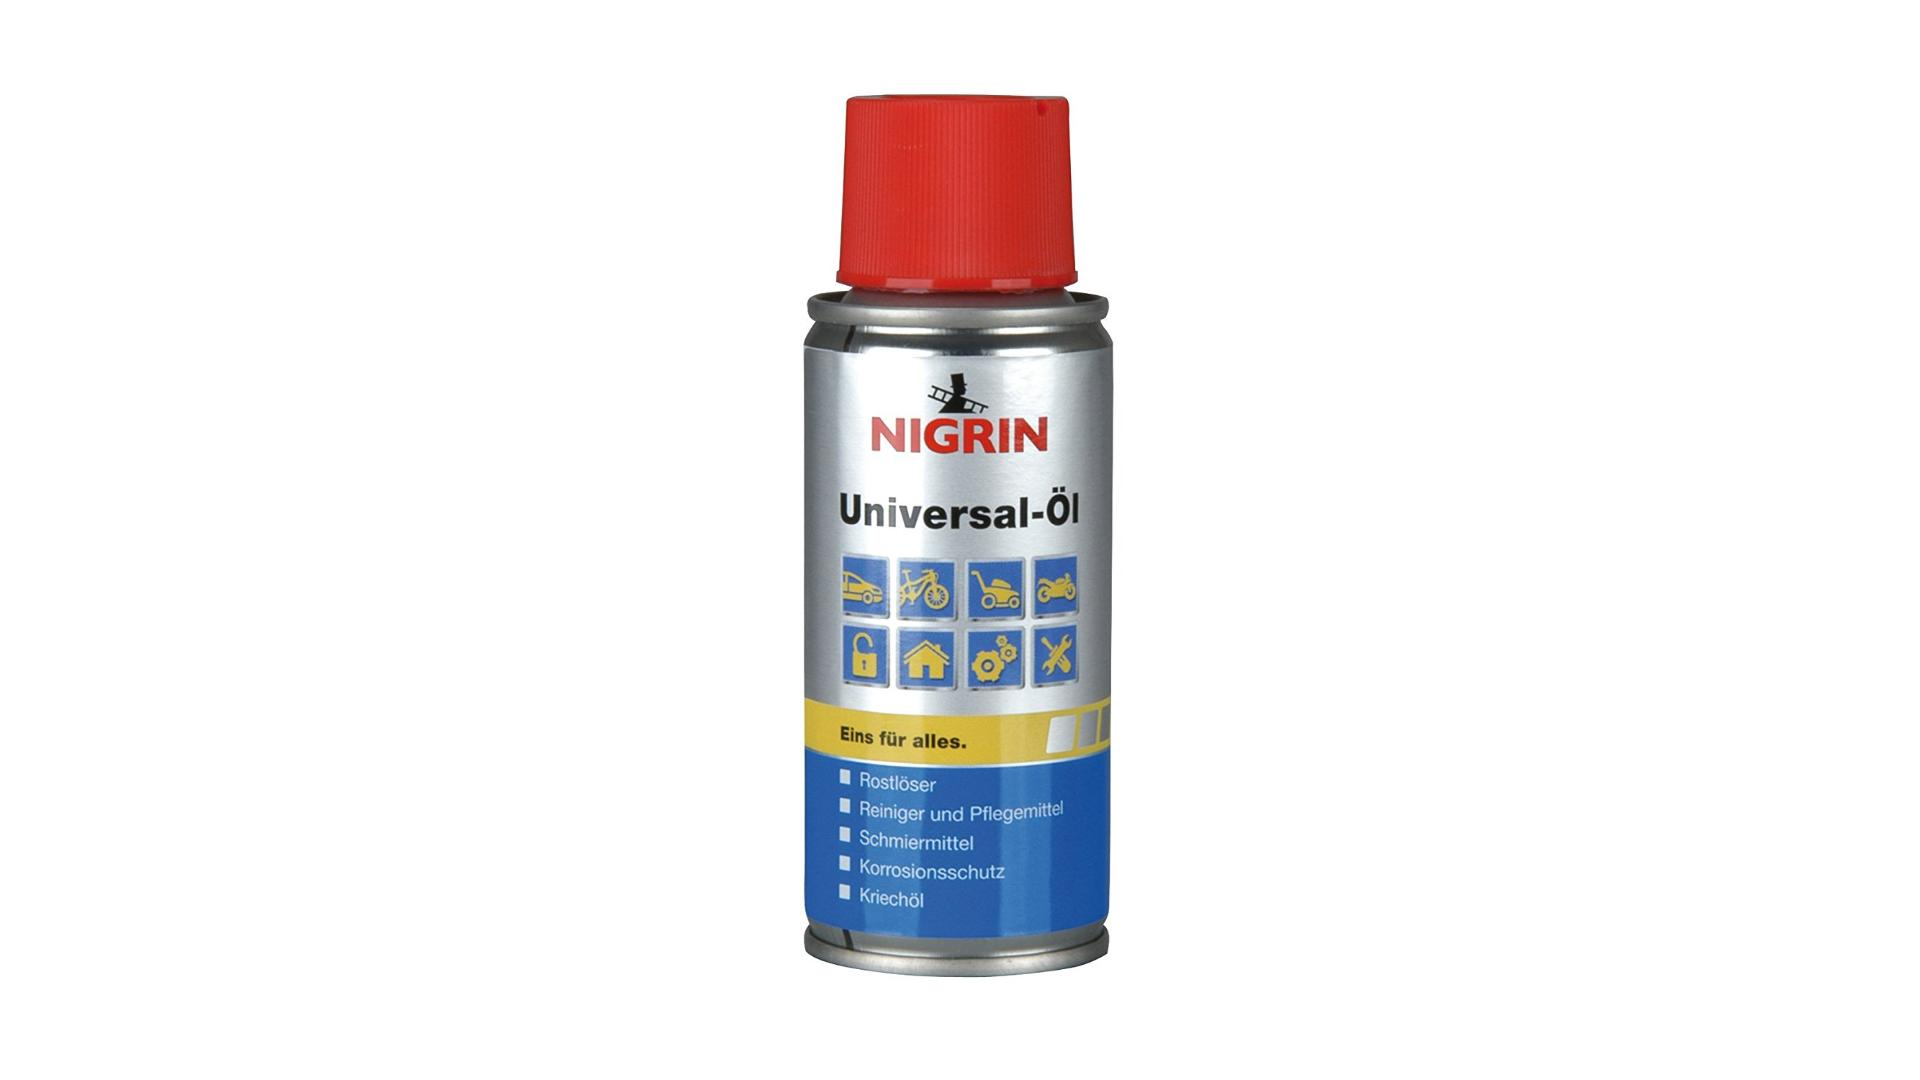 NIGRIN Universal Oil 100ml